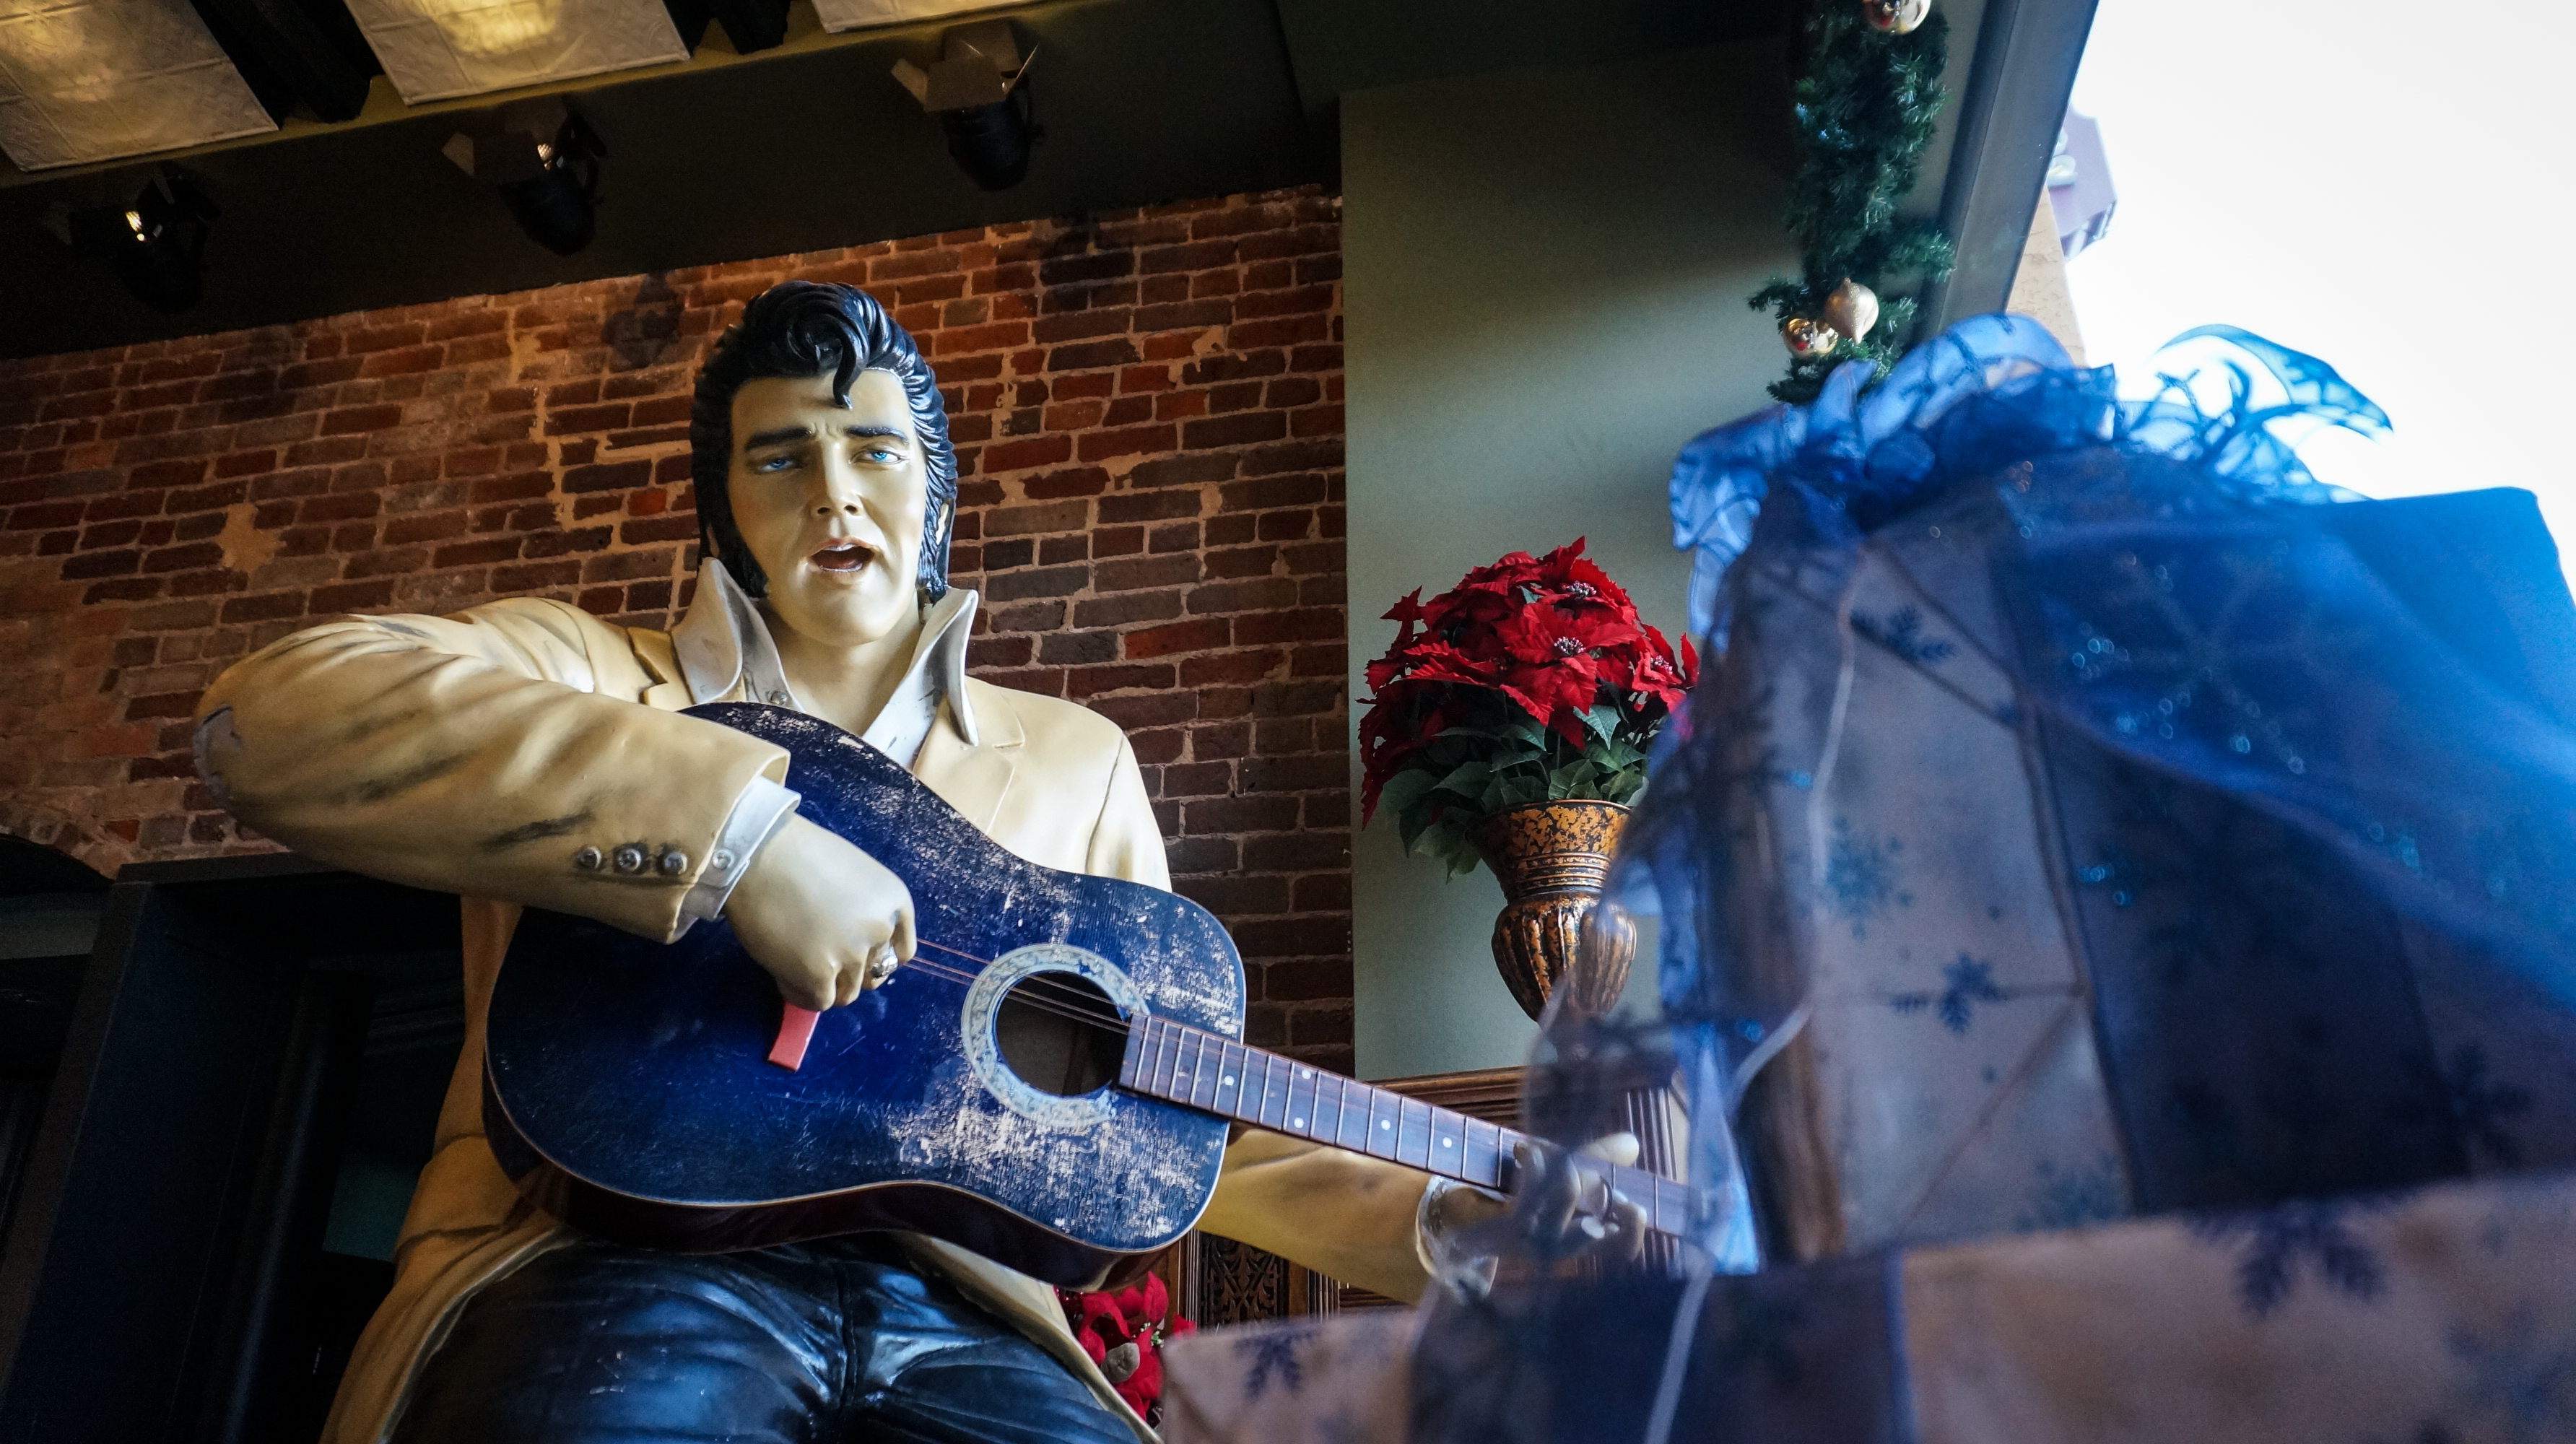 Take a Photo with Elvis in Grapevine, Texas